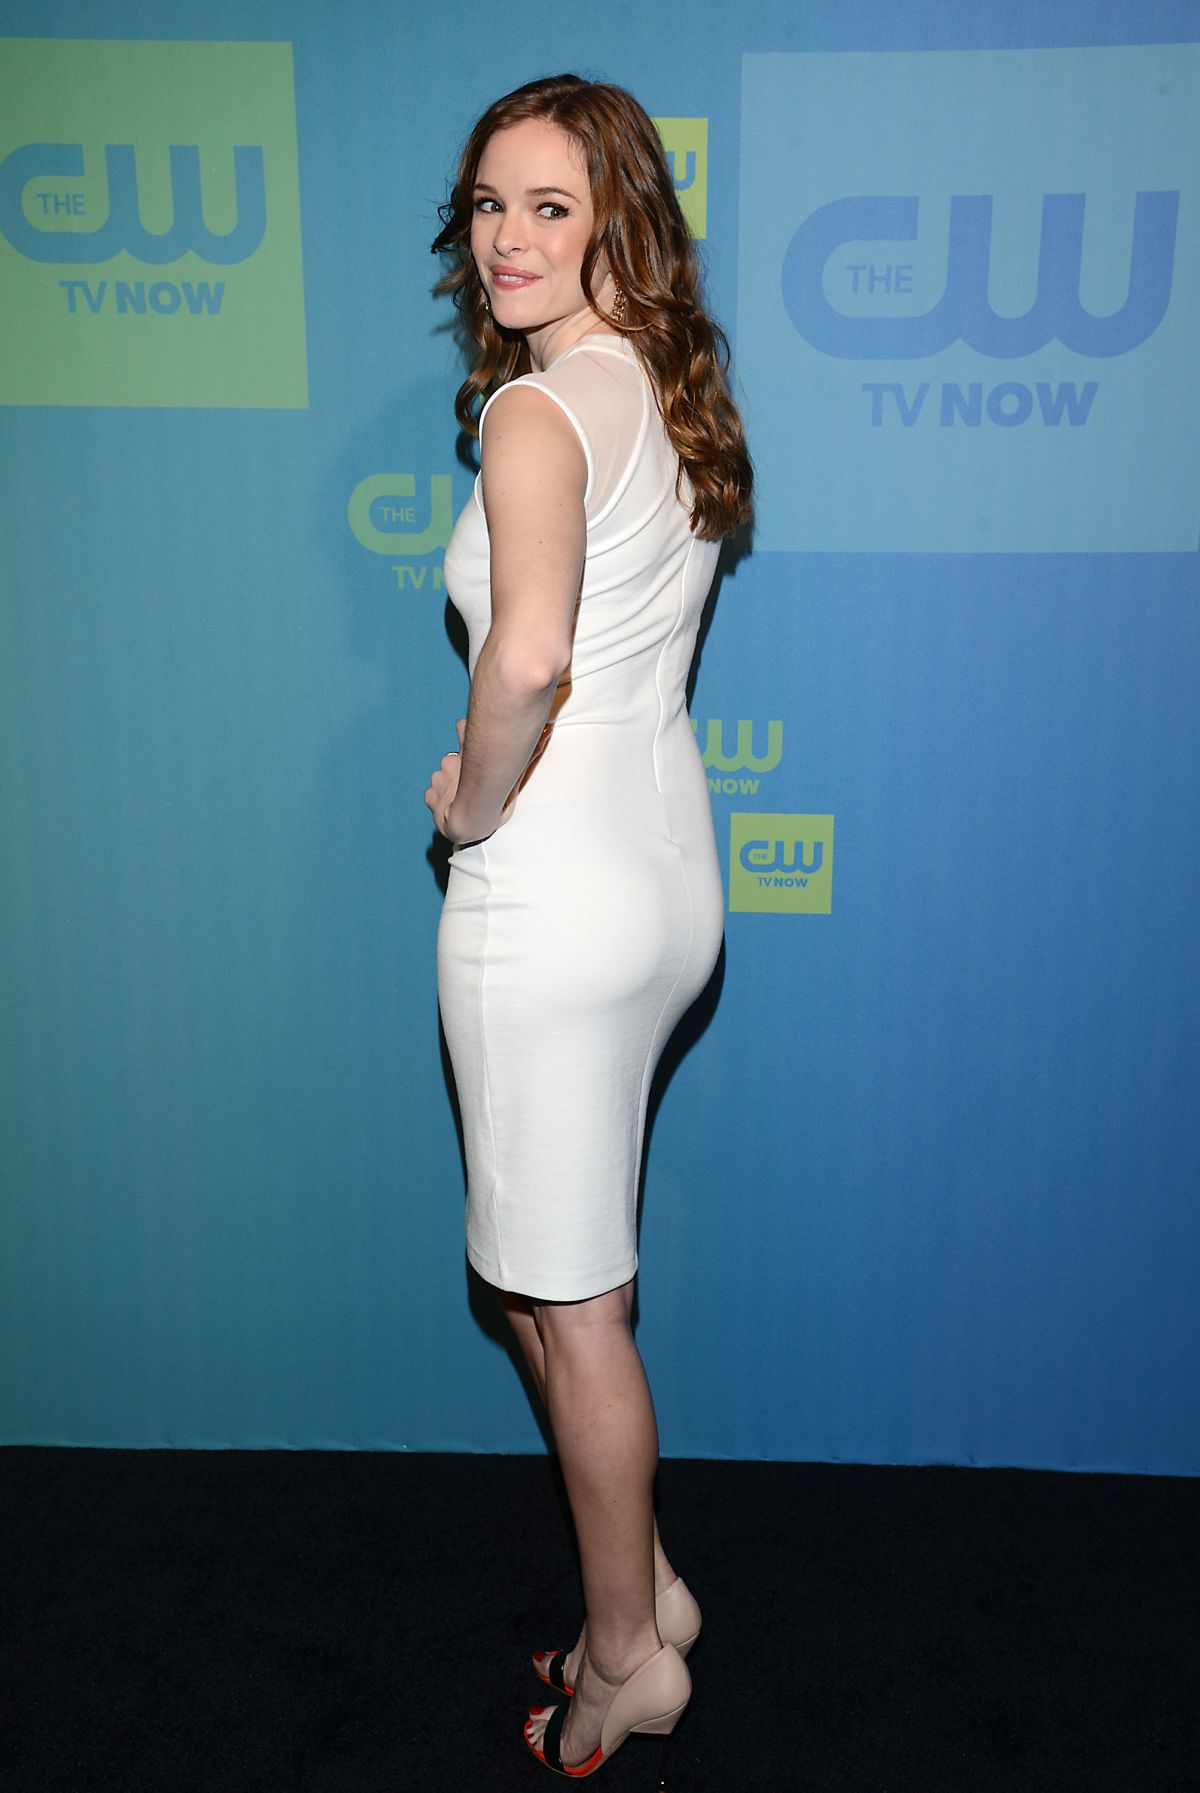 http://www.hawtcelebs.com/wp-content/uploads/2014/05/danielle-panabaker-at-cw-upfronts-presentation-in-new-york_2.jpg